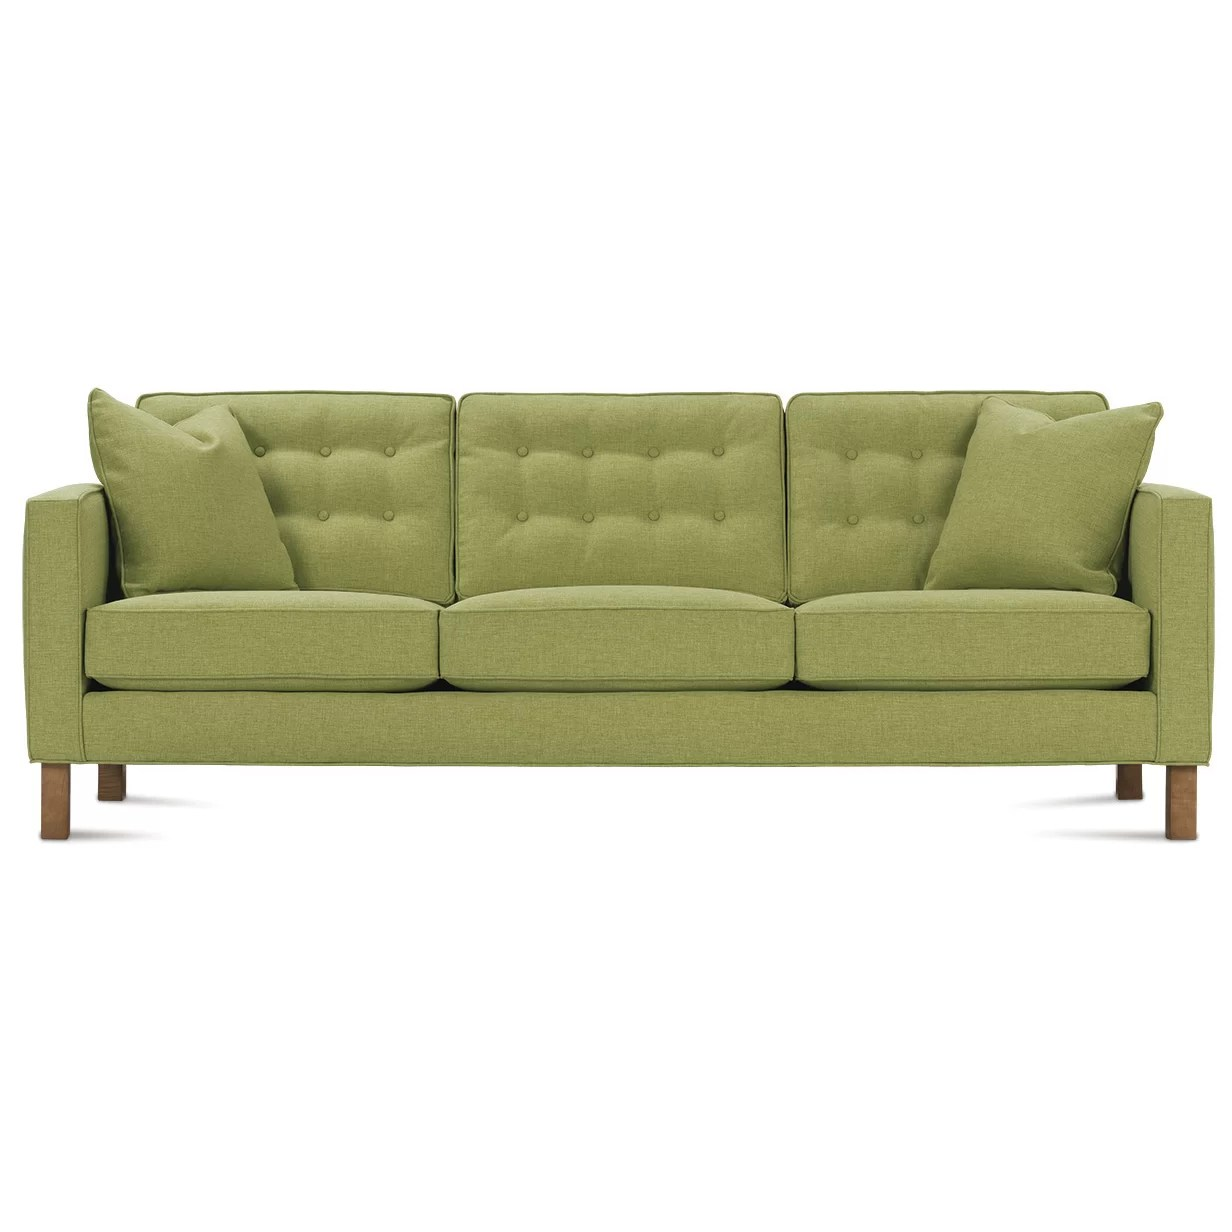 wayfair furniture sofa liverpool newcastle sofascore rowe abbott and reviews